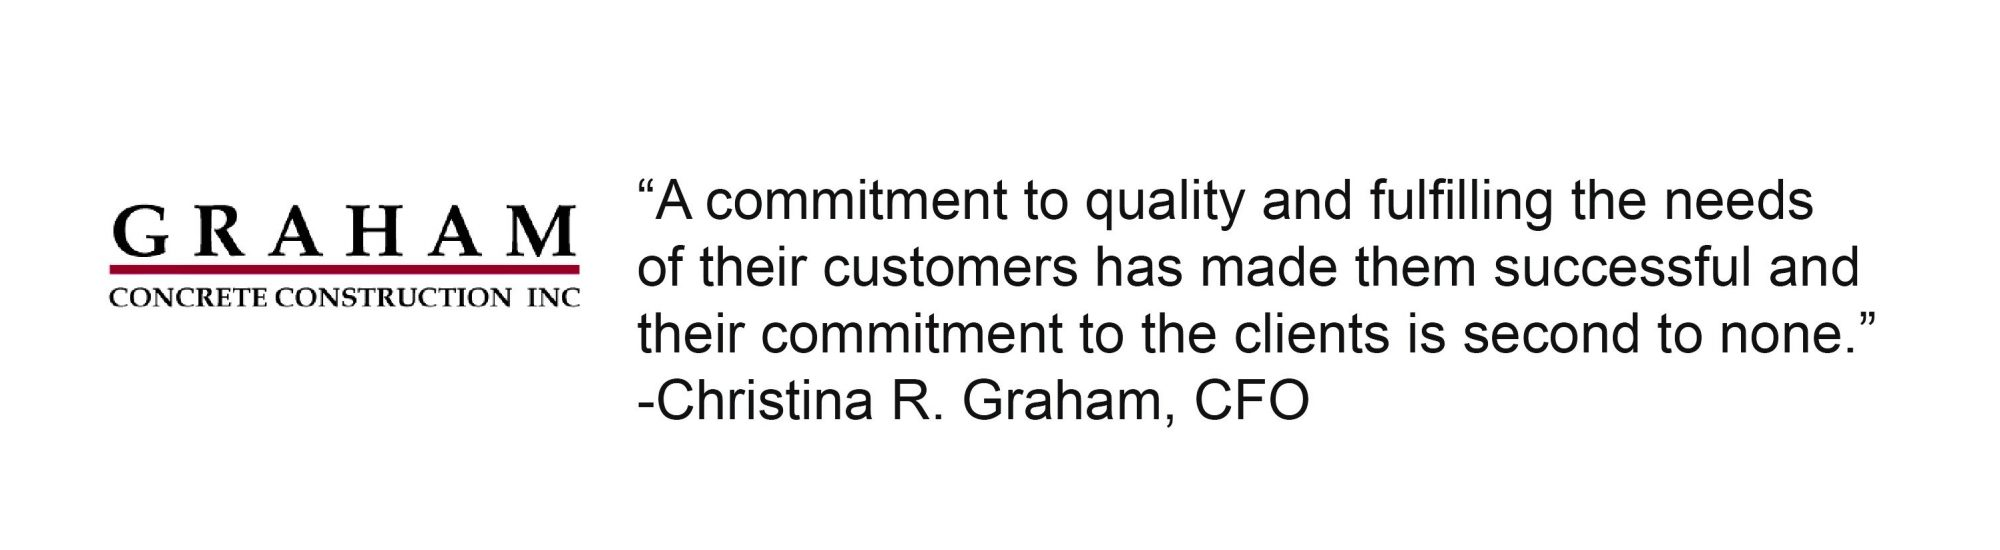 Graham Concrete Construction Inc testimonial